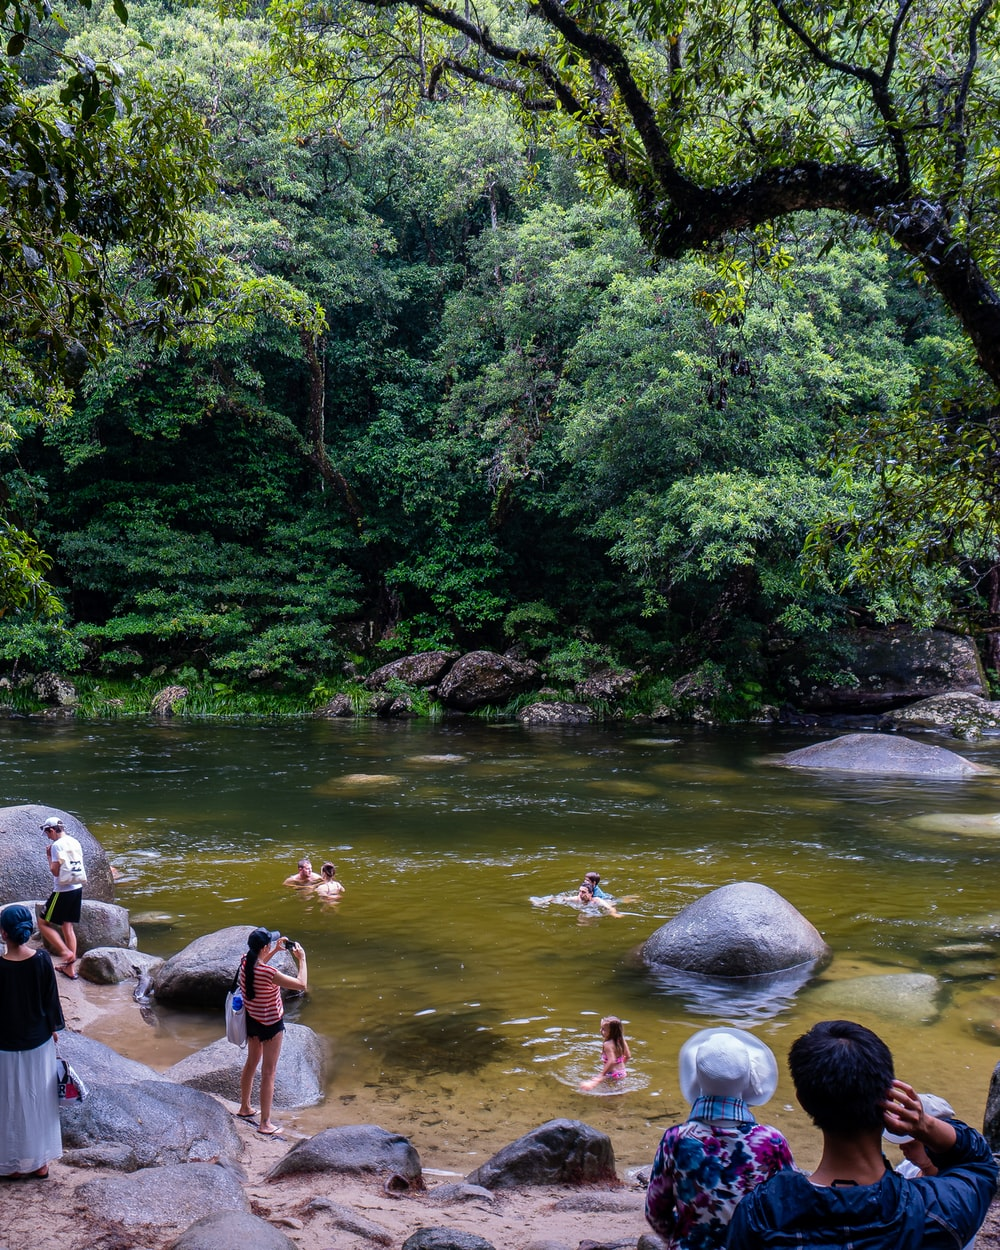 people in water in the forest during daytime